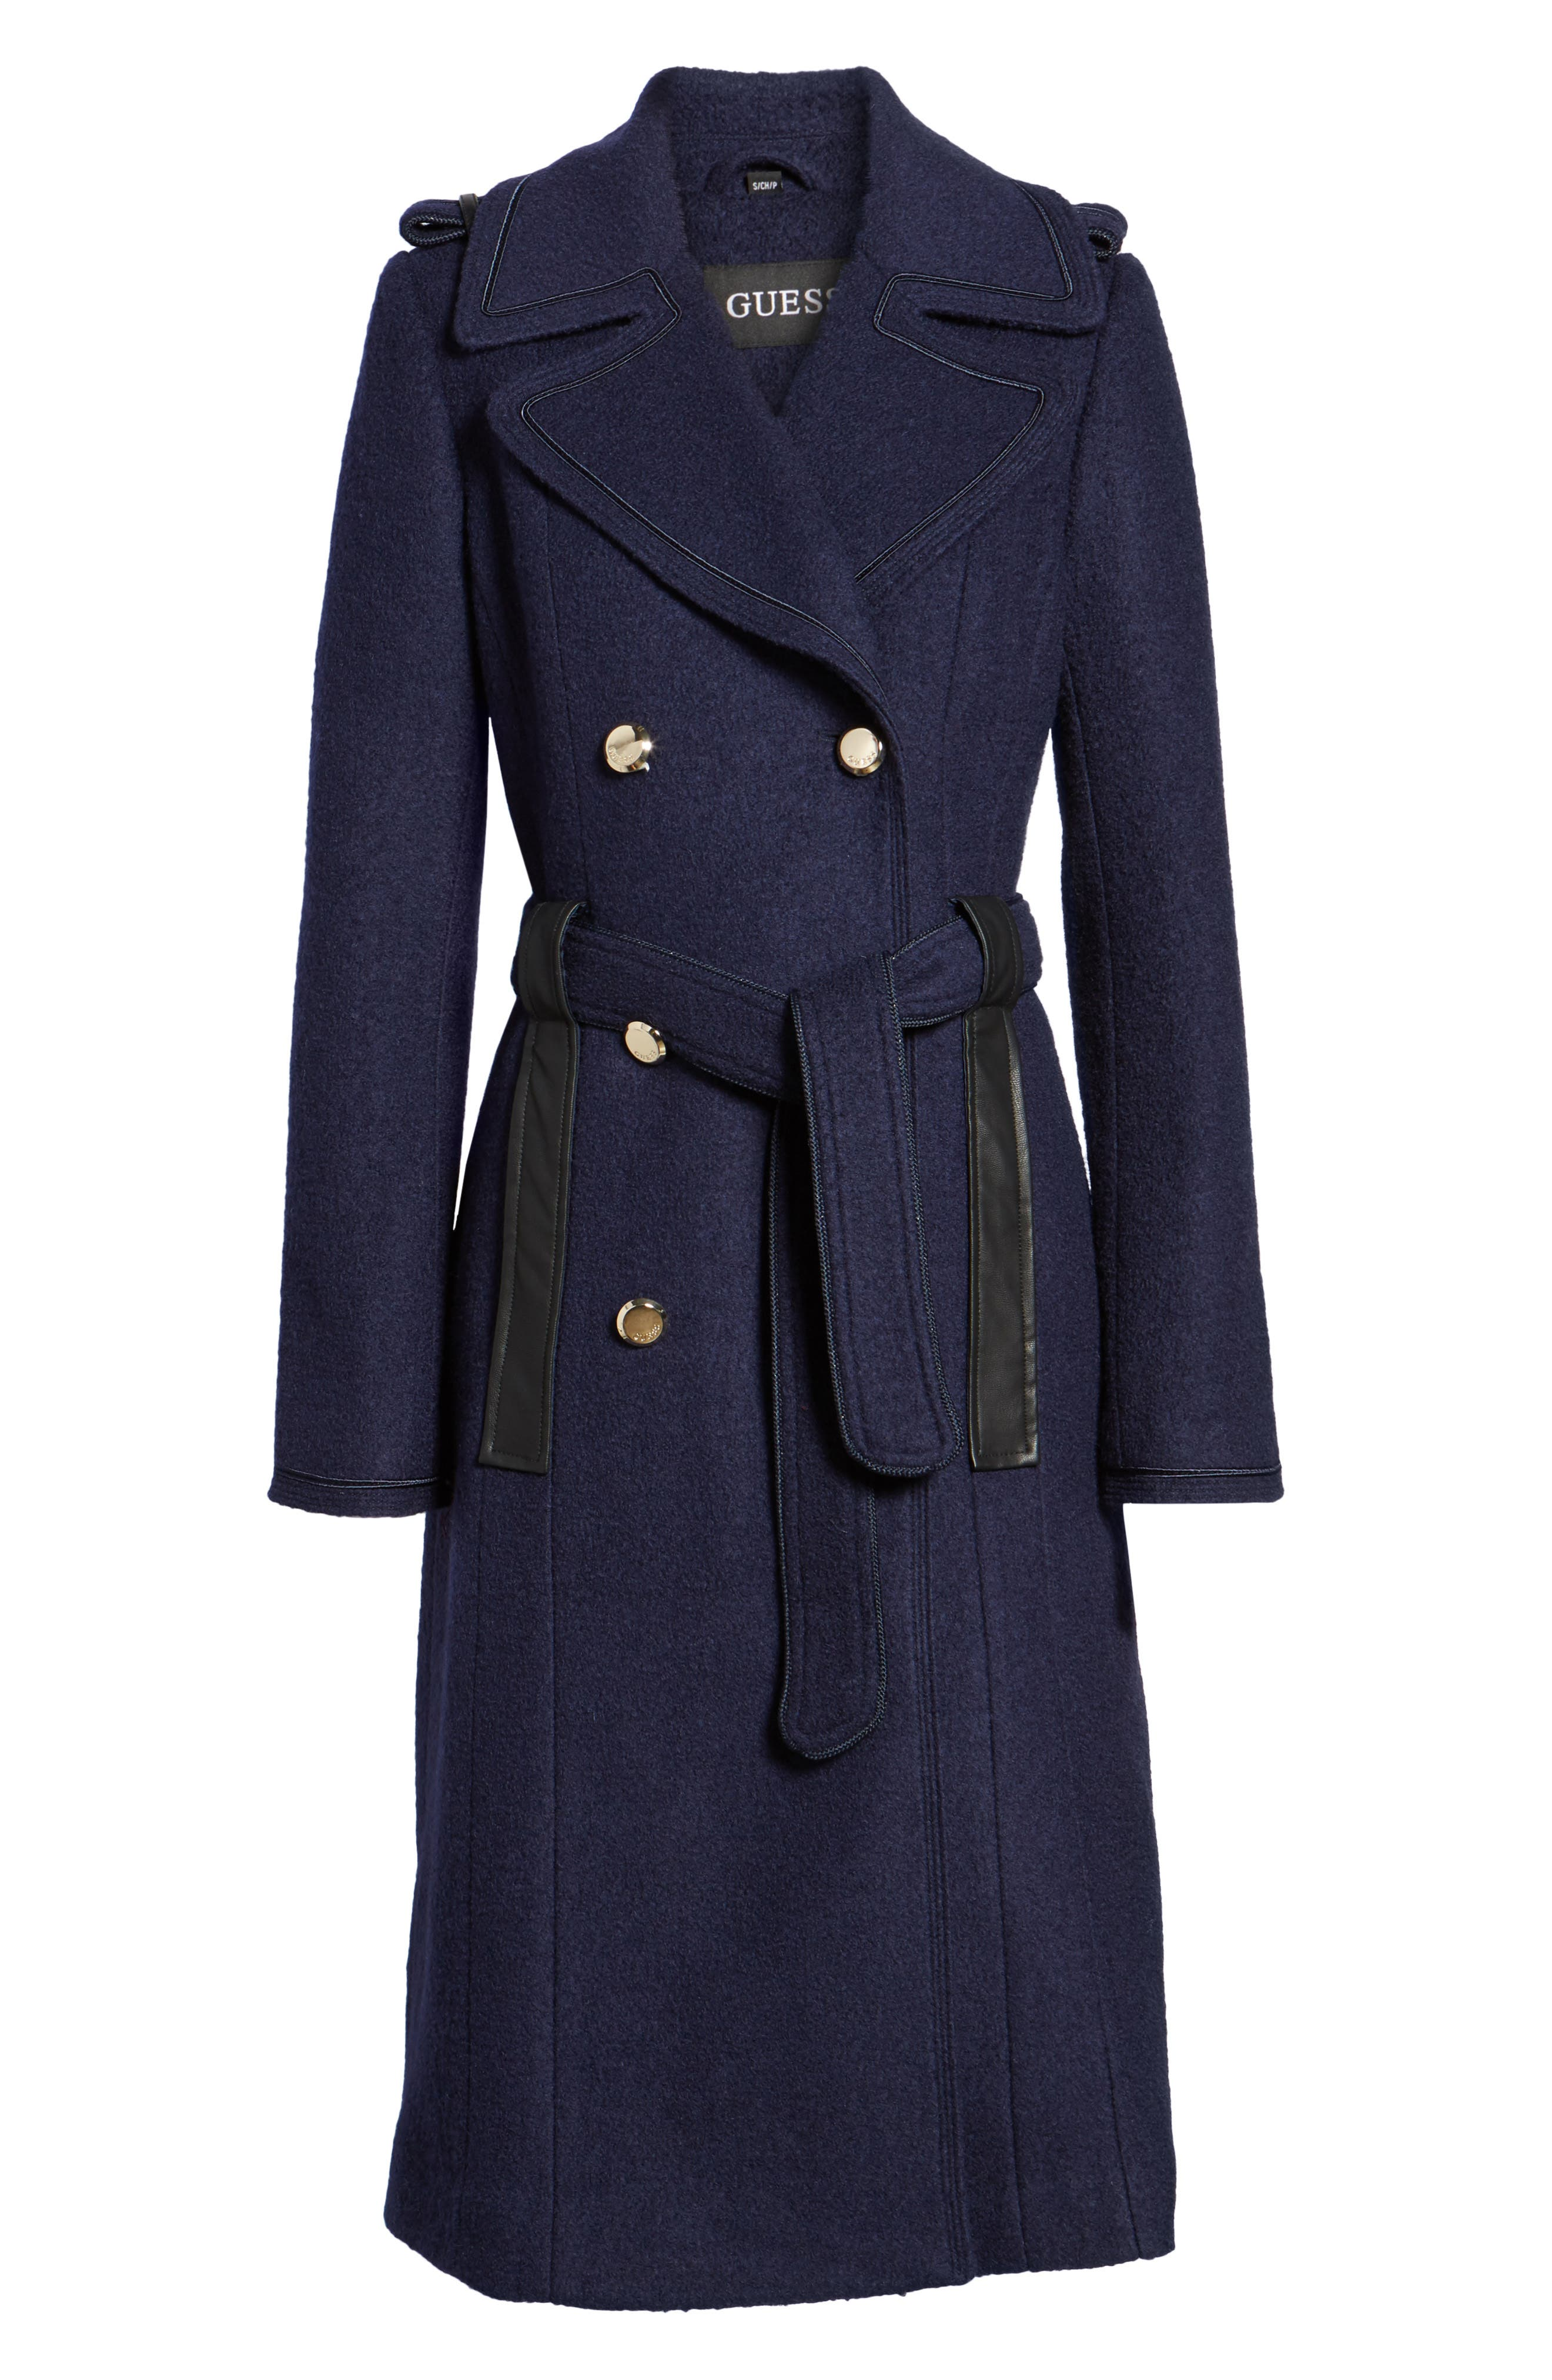 Boiled Wool Trench Coat,                             Alternate thumbnail 5, color,                             410